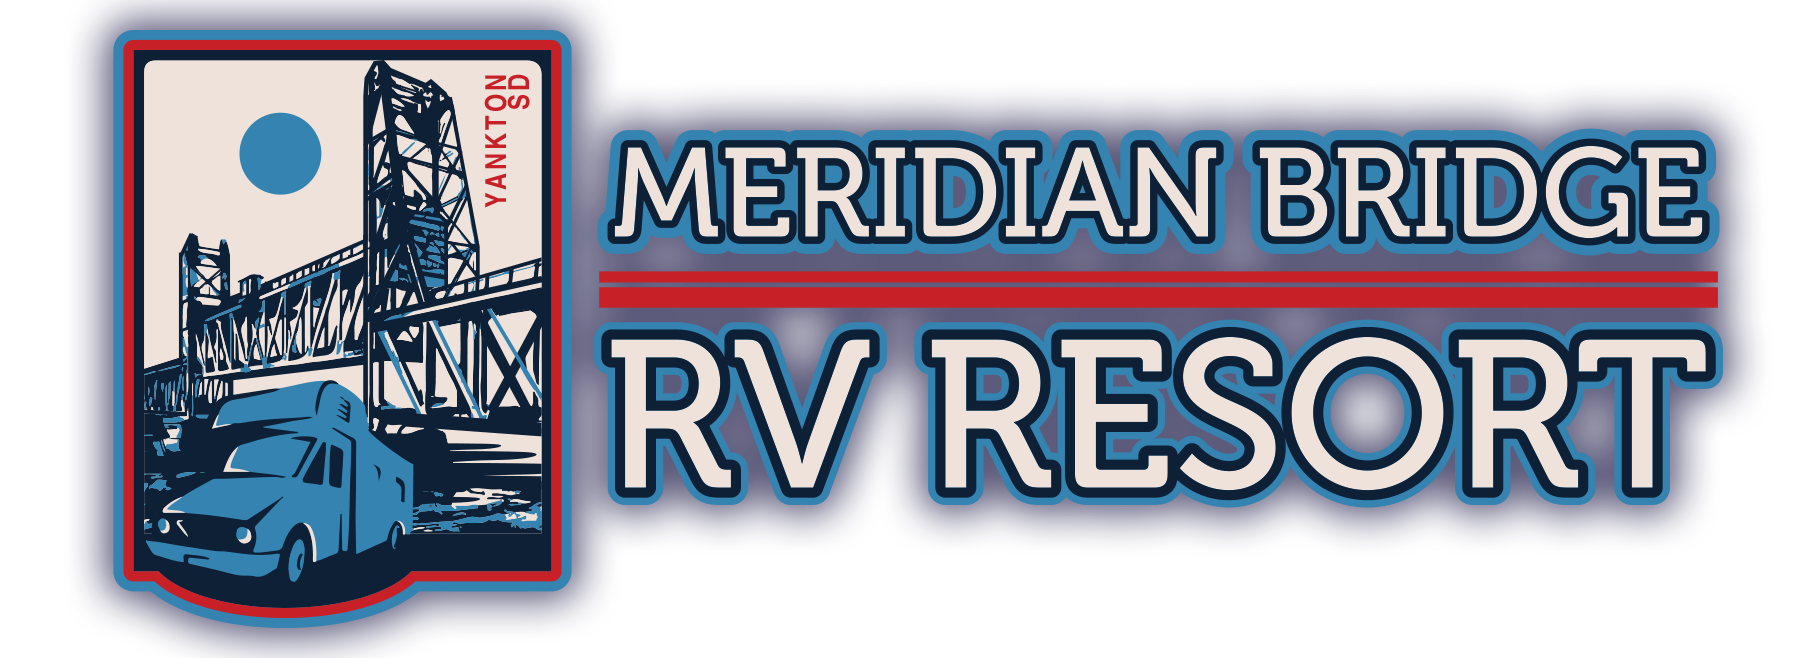 meridian bridge rv resort, south dakota, logo